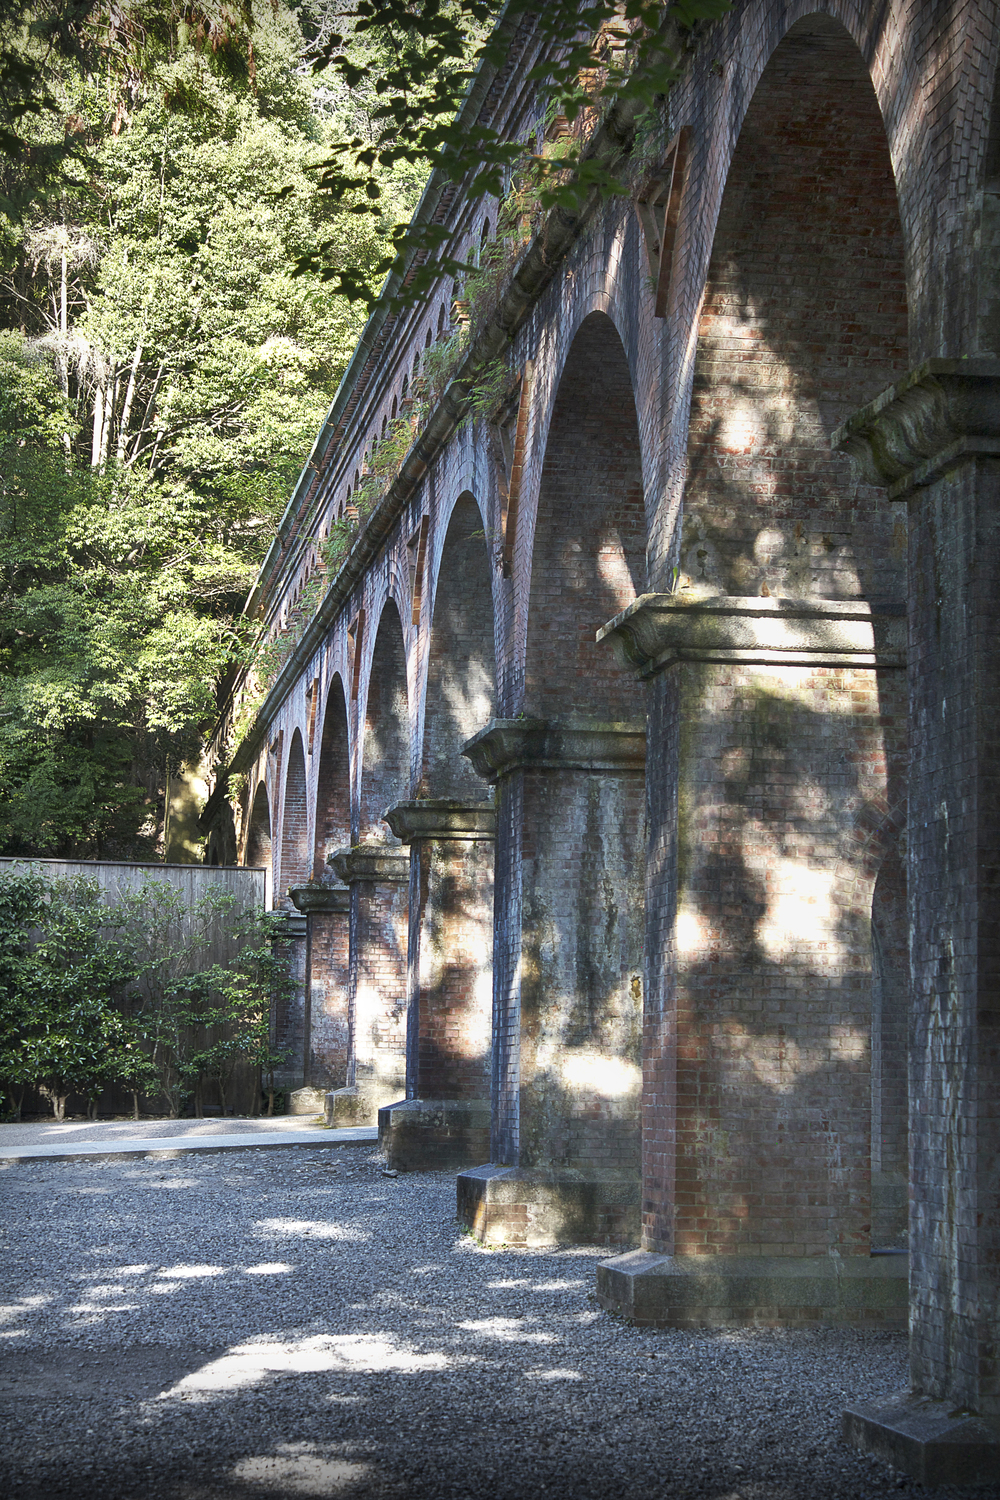 acqueduct.jpg